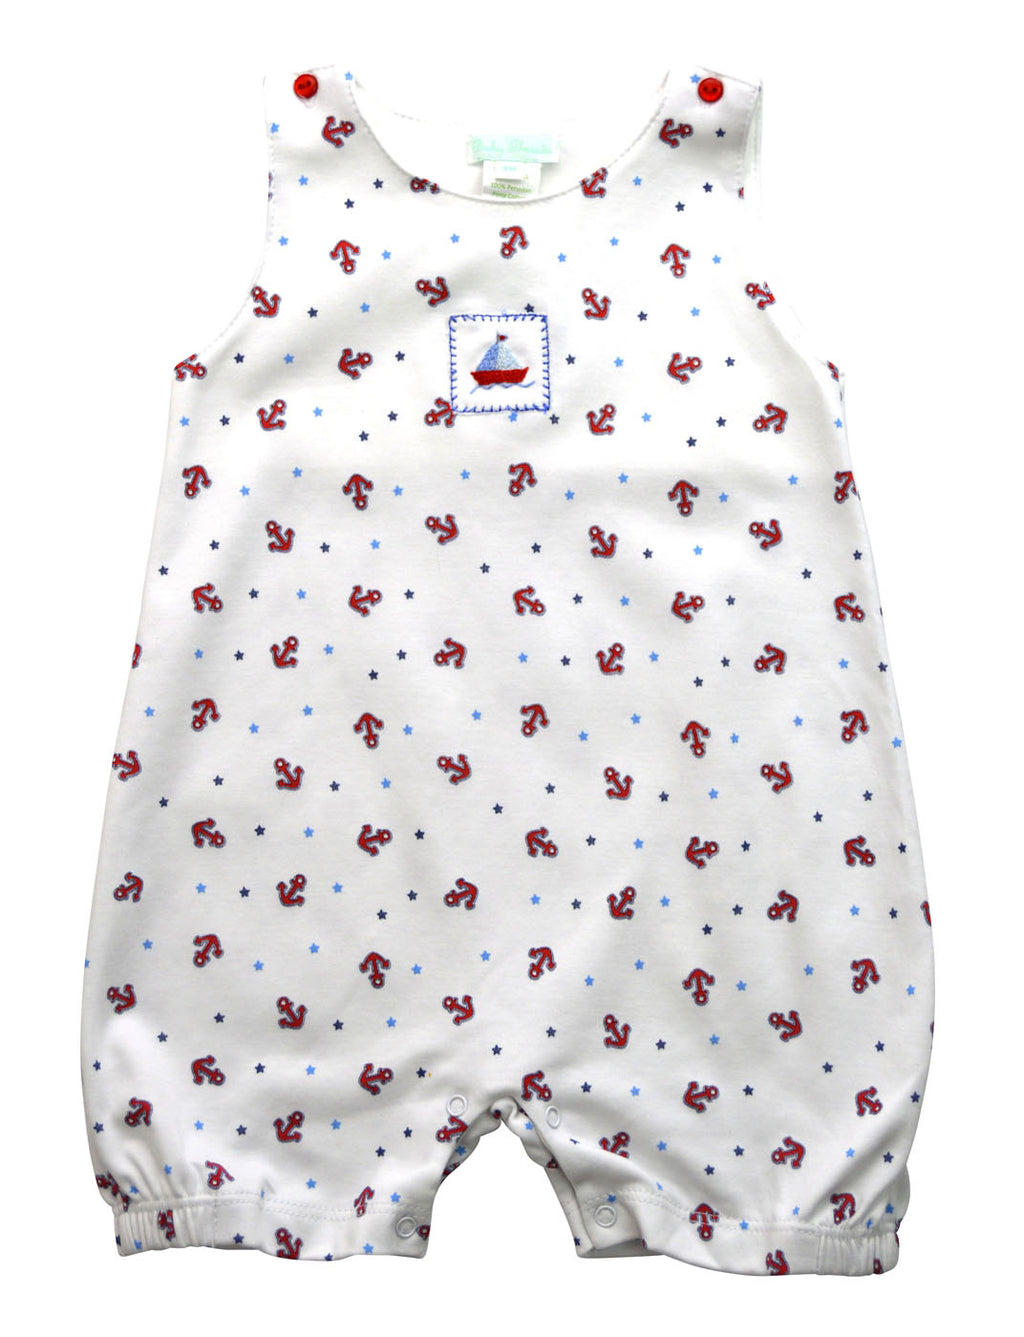 Baby Threads Pima cotton Anchors and stars baby overall - Little Threads Inc. Children's Clothing